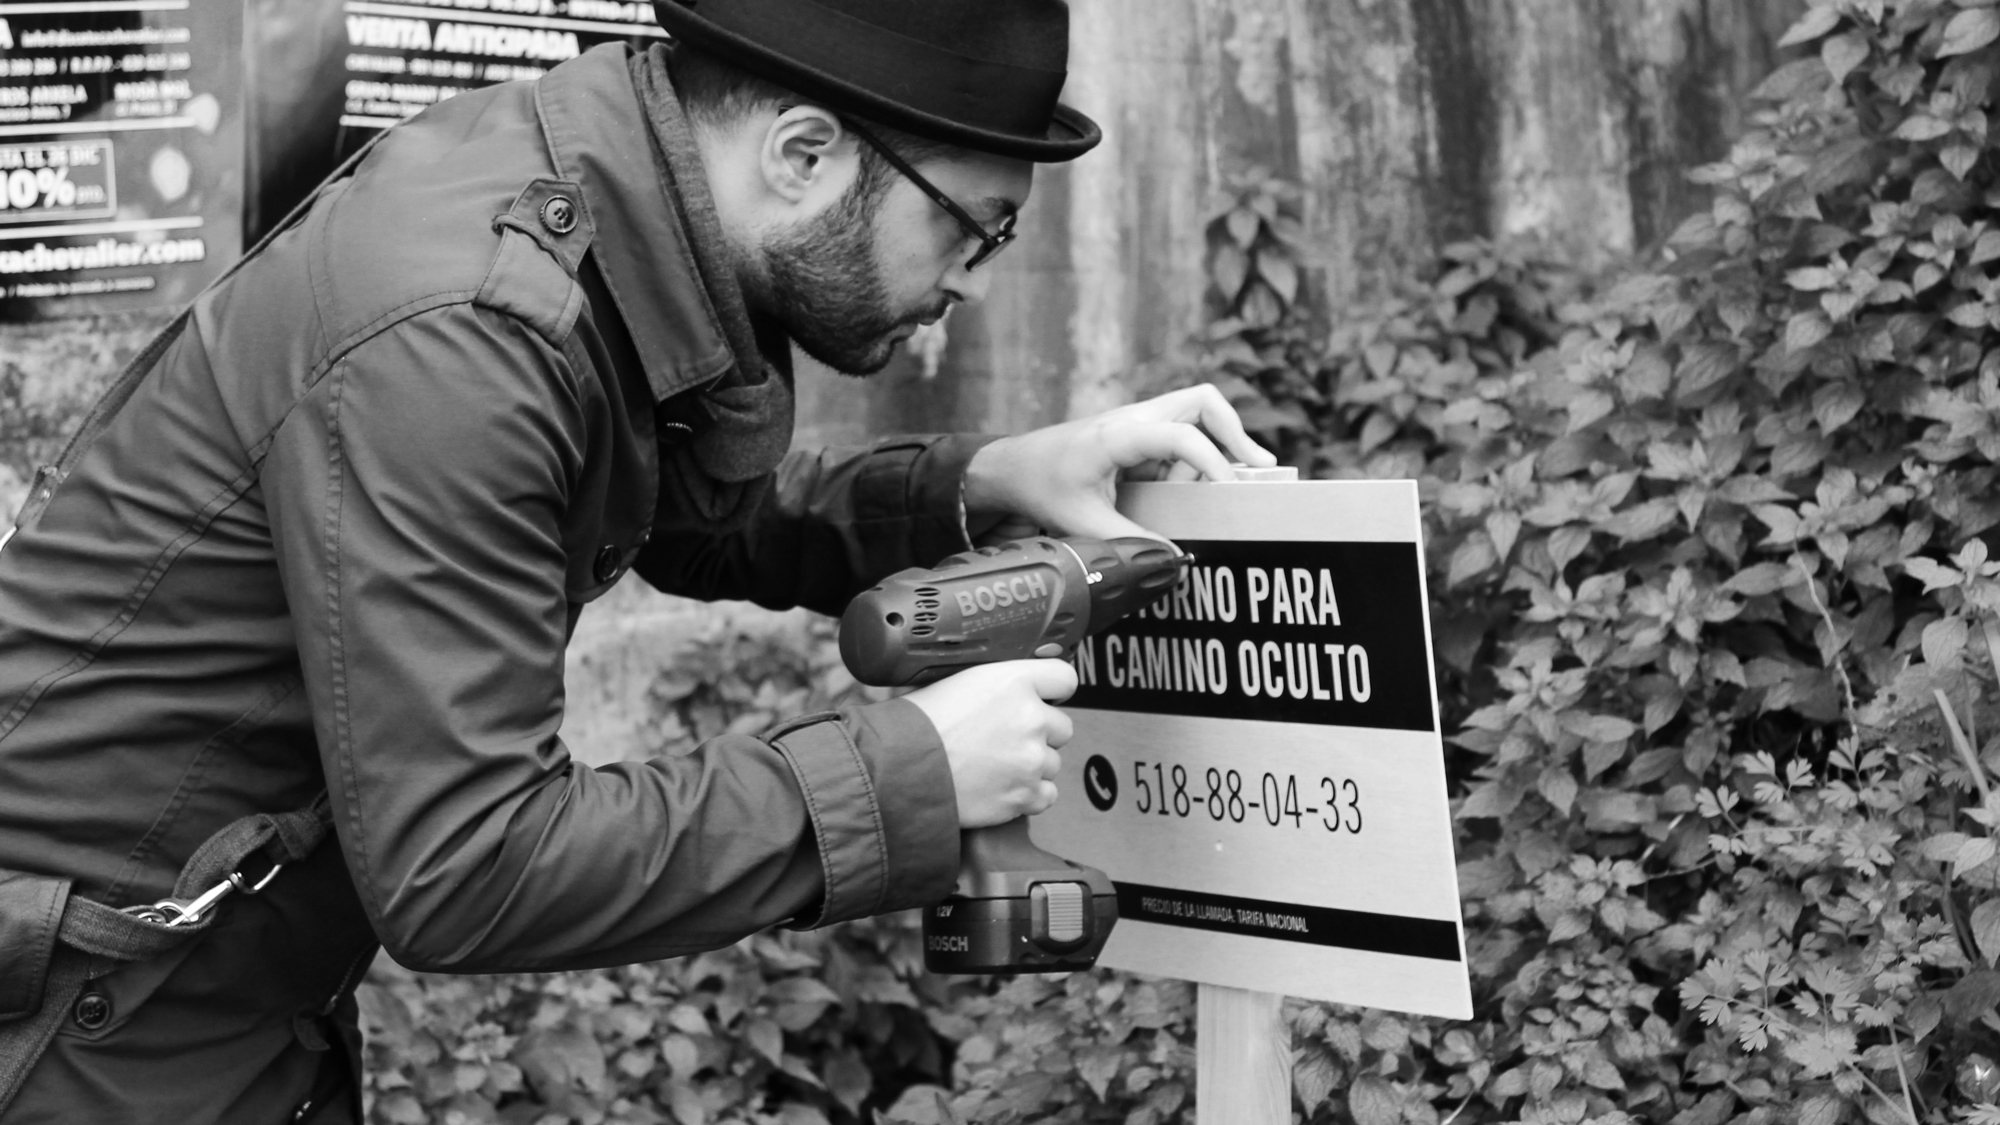 Production: Installing a sign on a hidden path